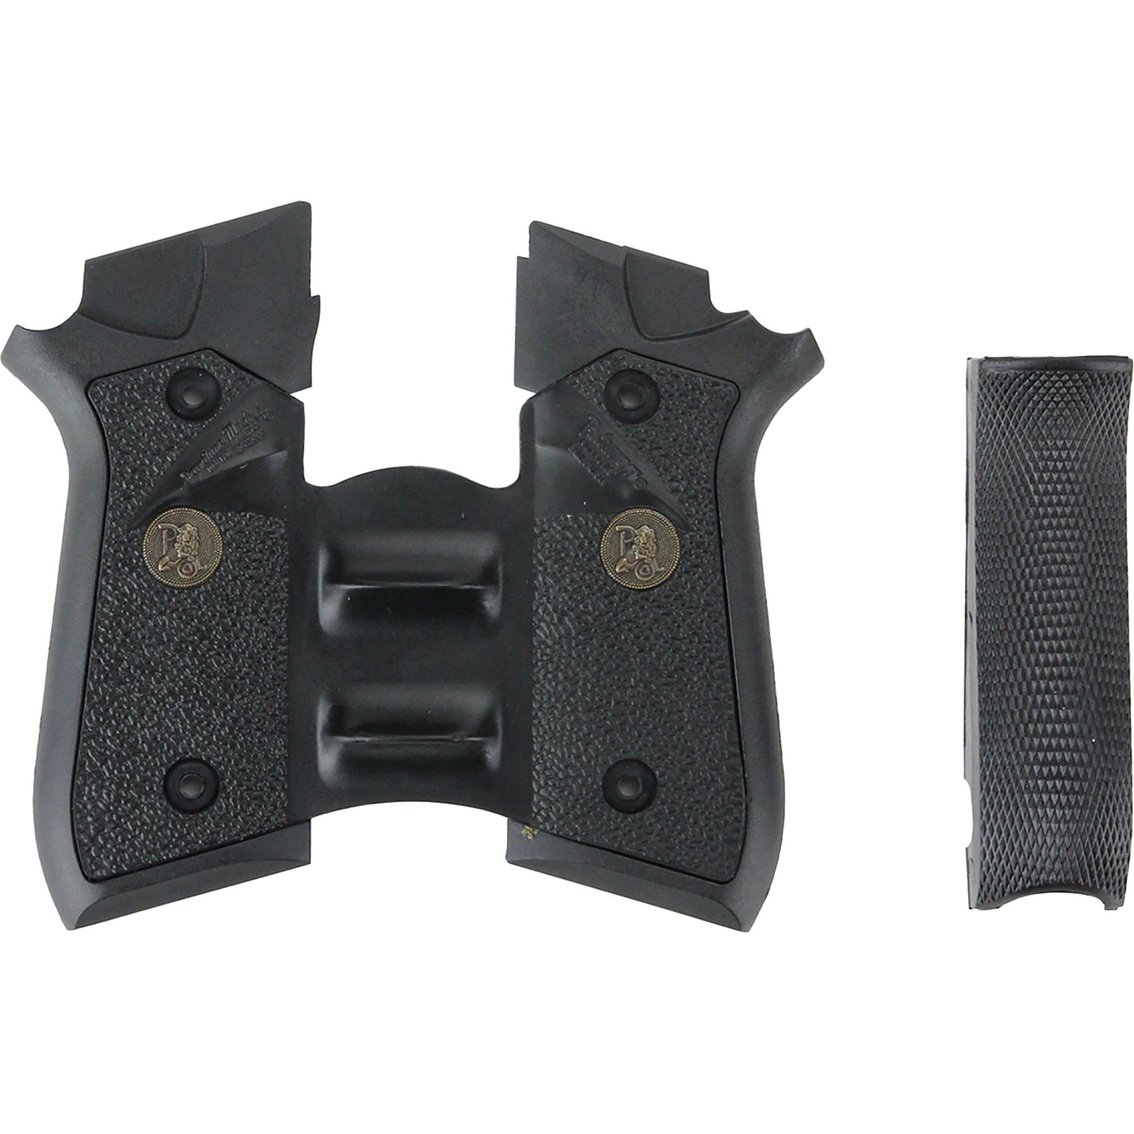 Pachmayr Grip Signature Taurus Pt92/99/100/101 | Firearm Components